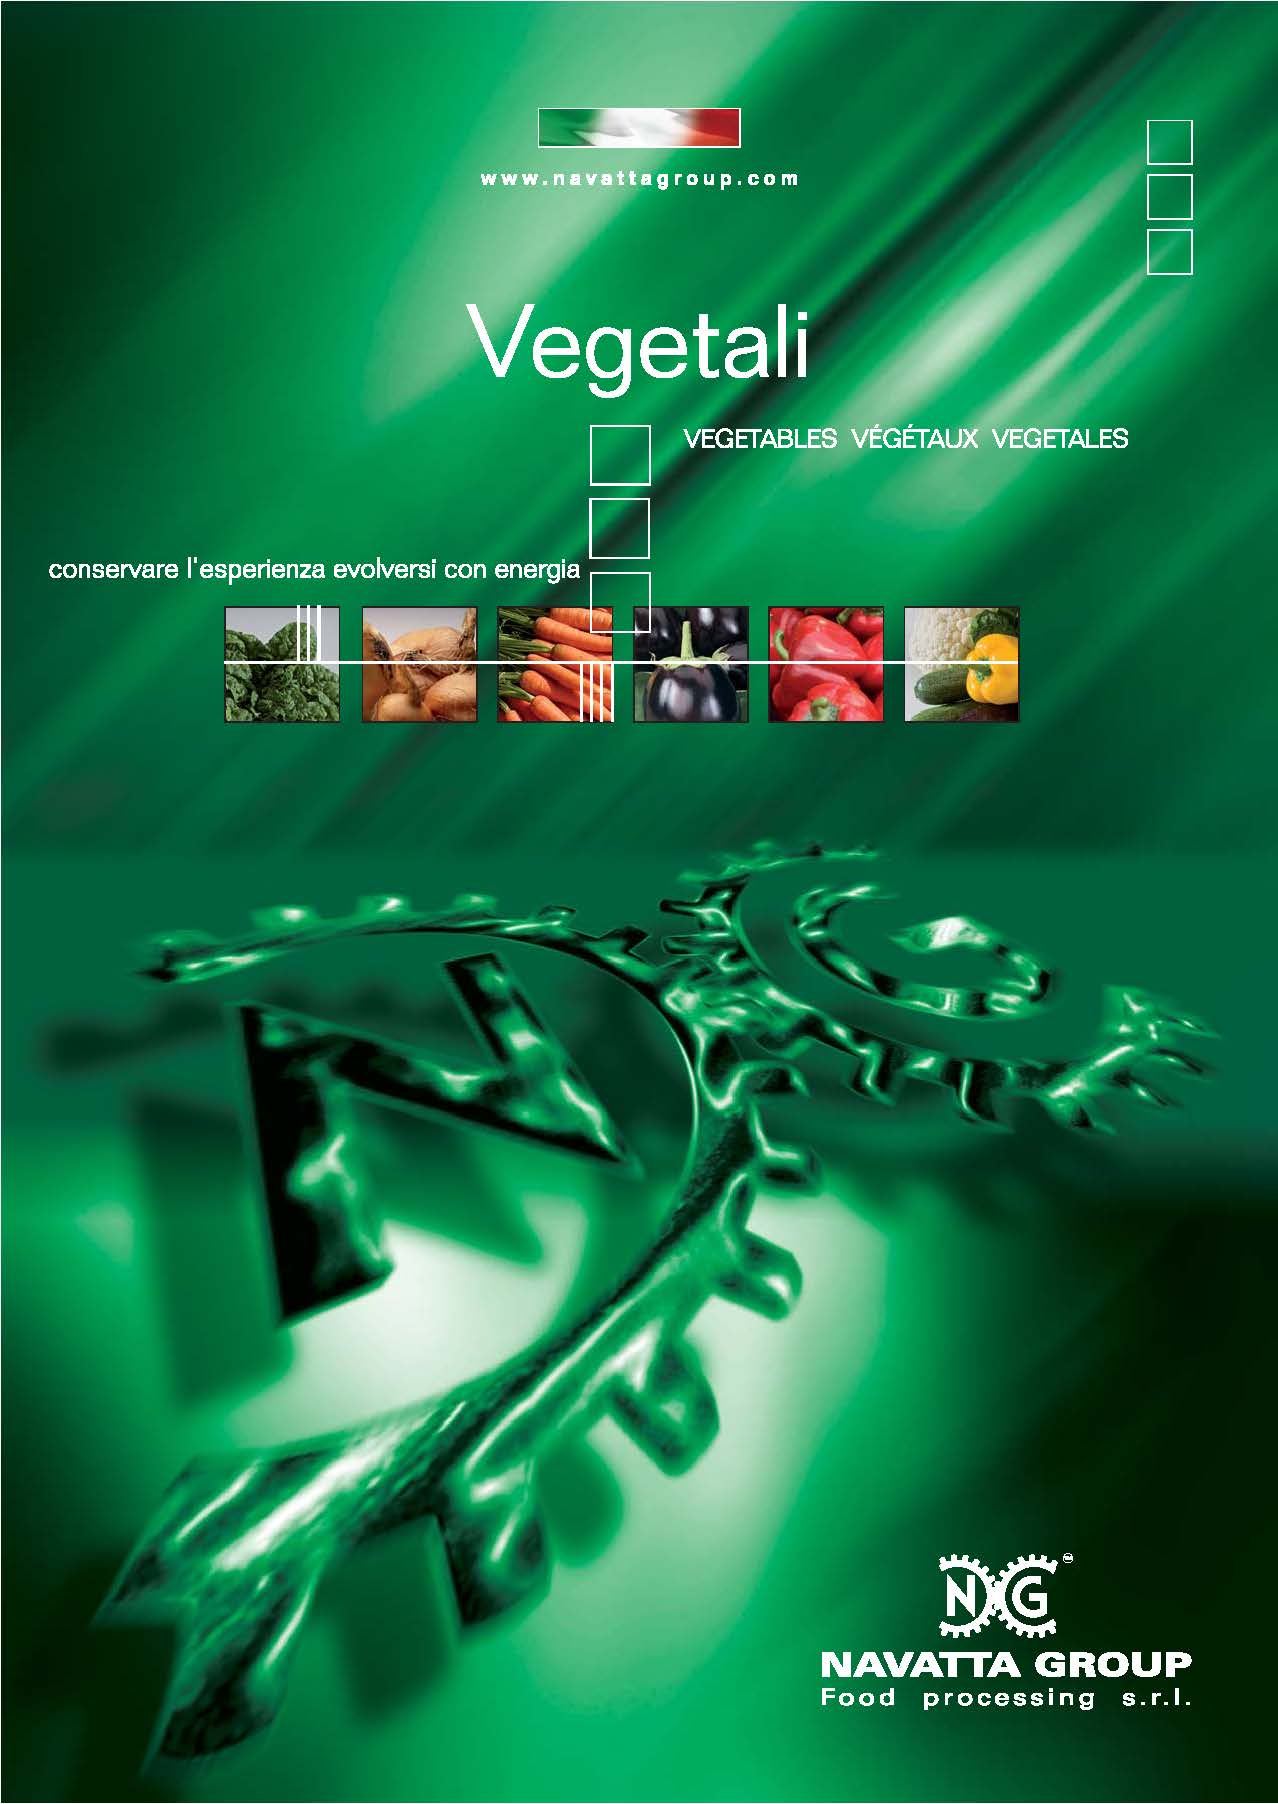 Catalogo Vegetali, Vegetables, Vegetaux